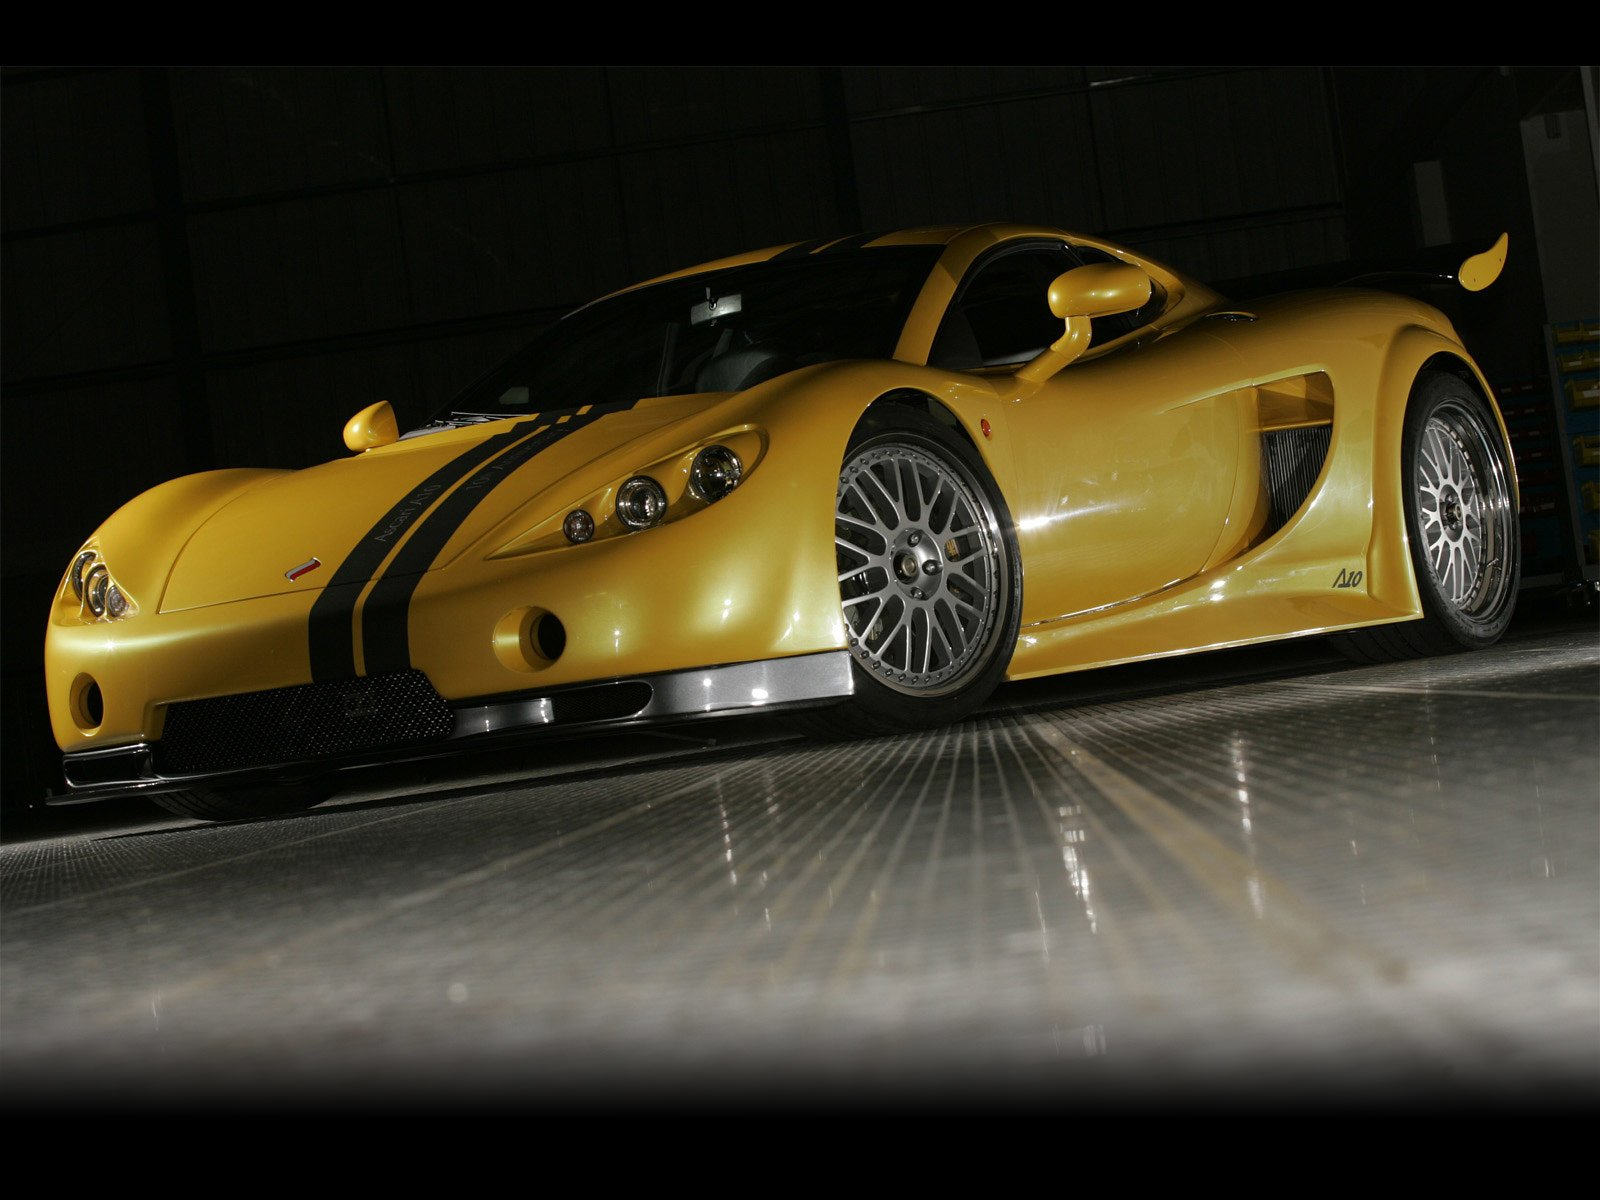 Latest 2007 Ascari A10 Car Desktop Wallpaper Accident Lawyers Free Download